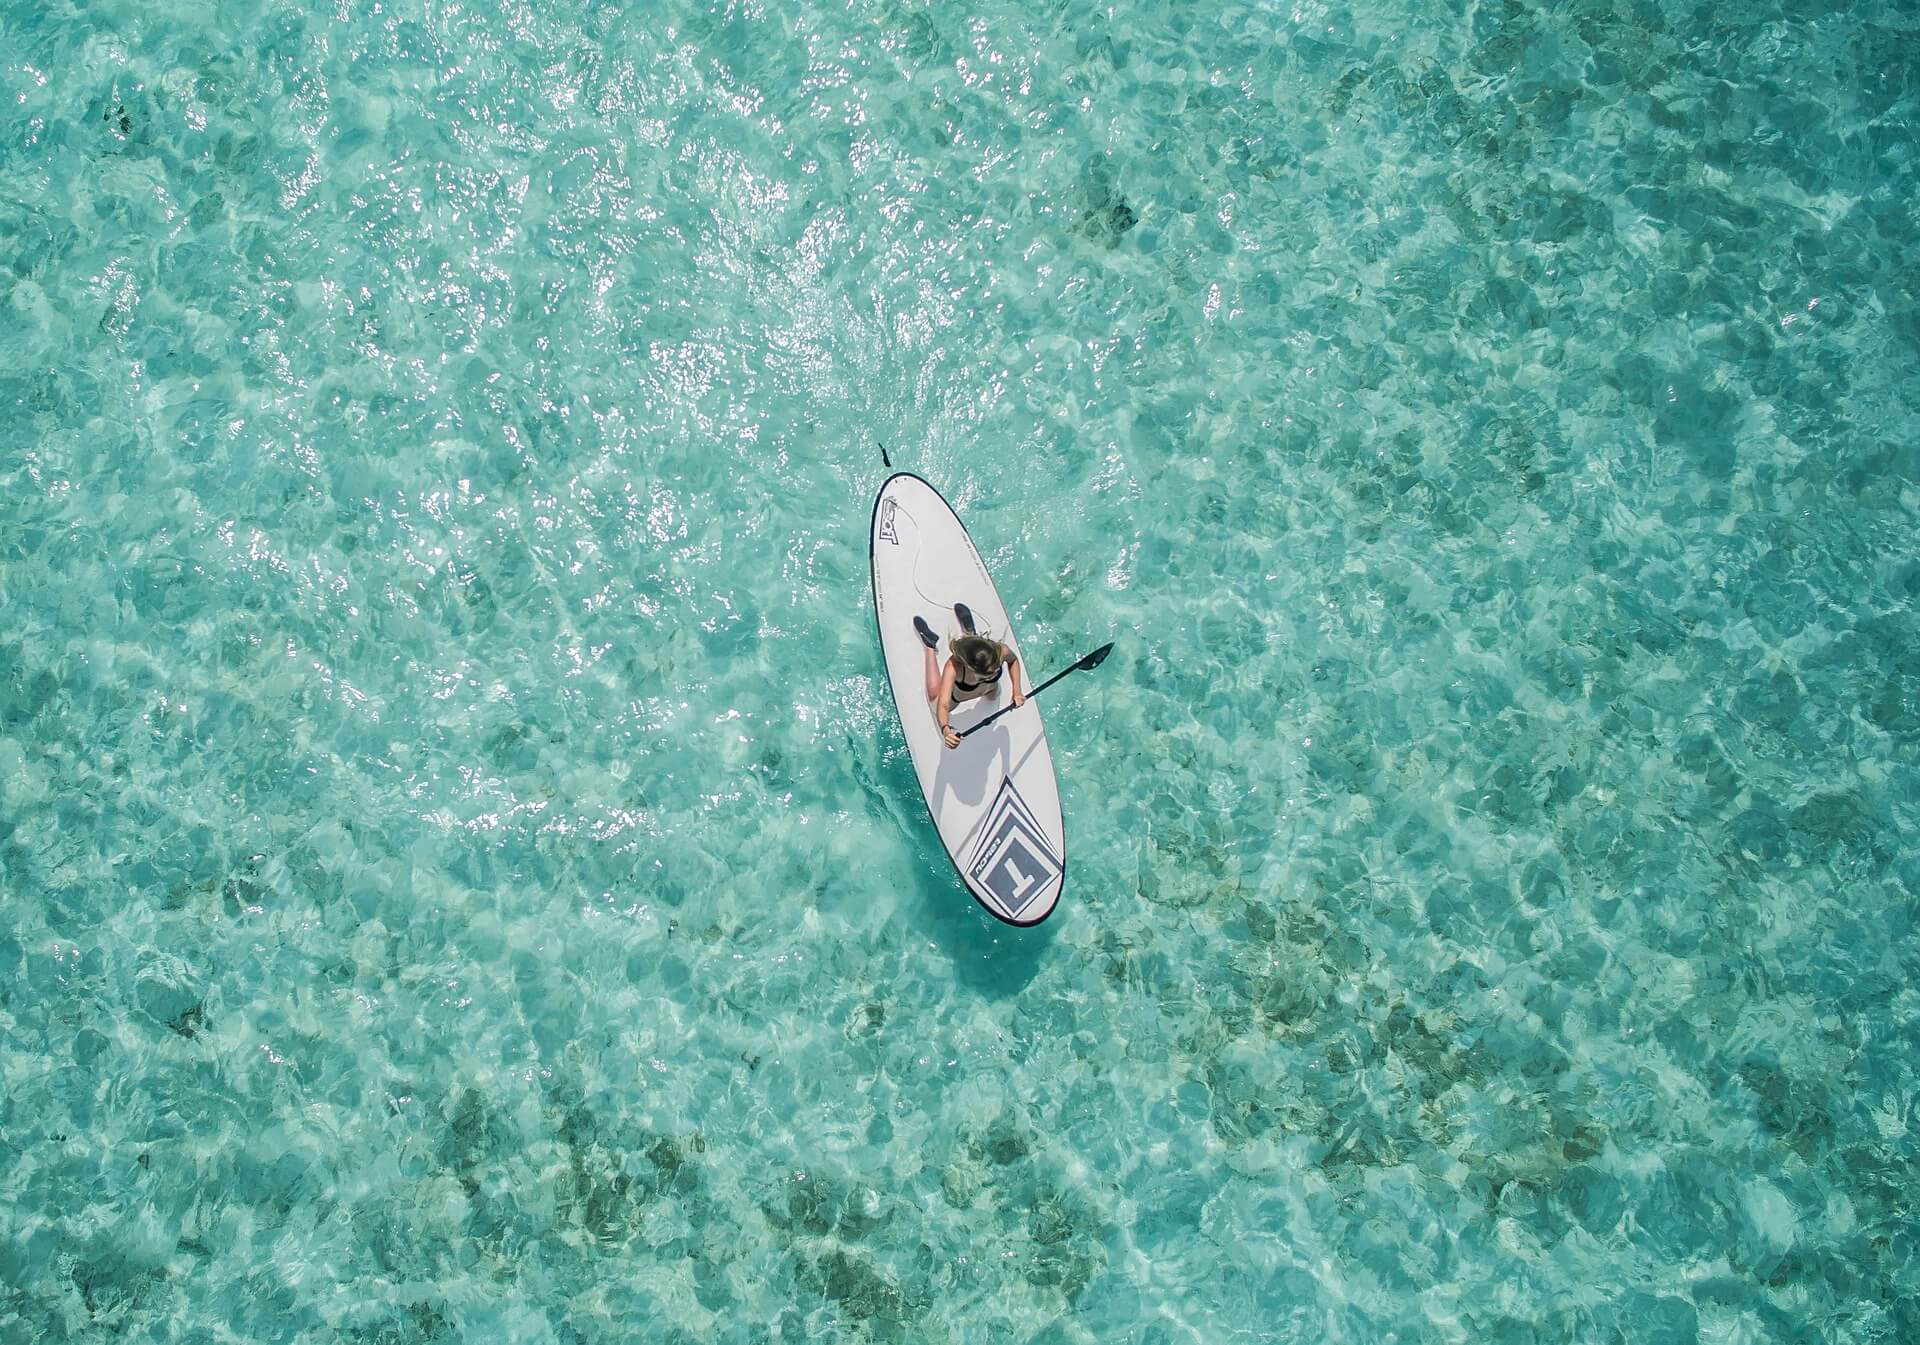 stand-up-paddle-sur-mer-turquoise